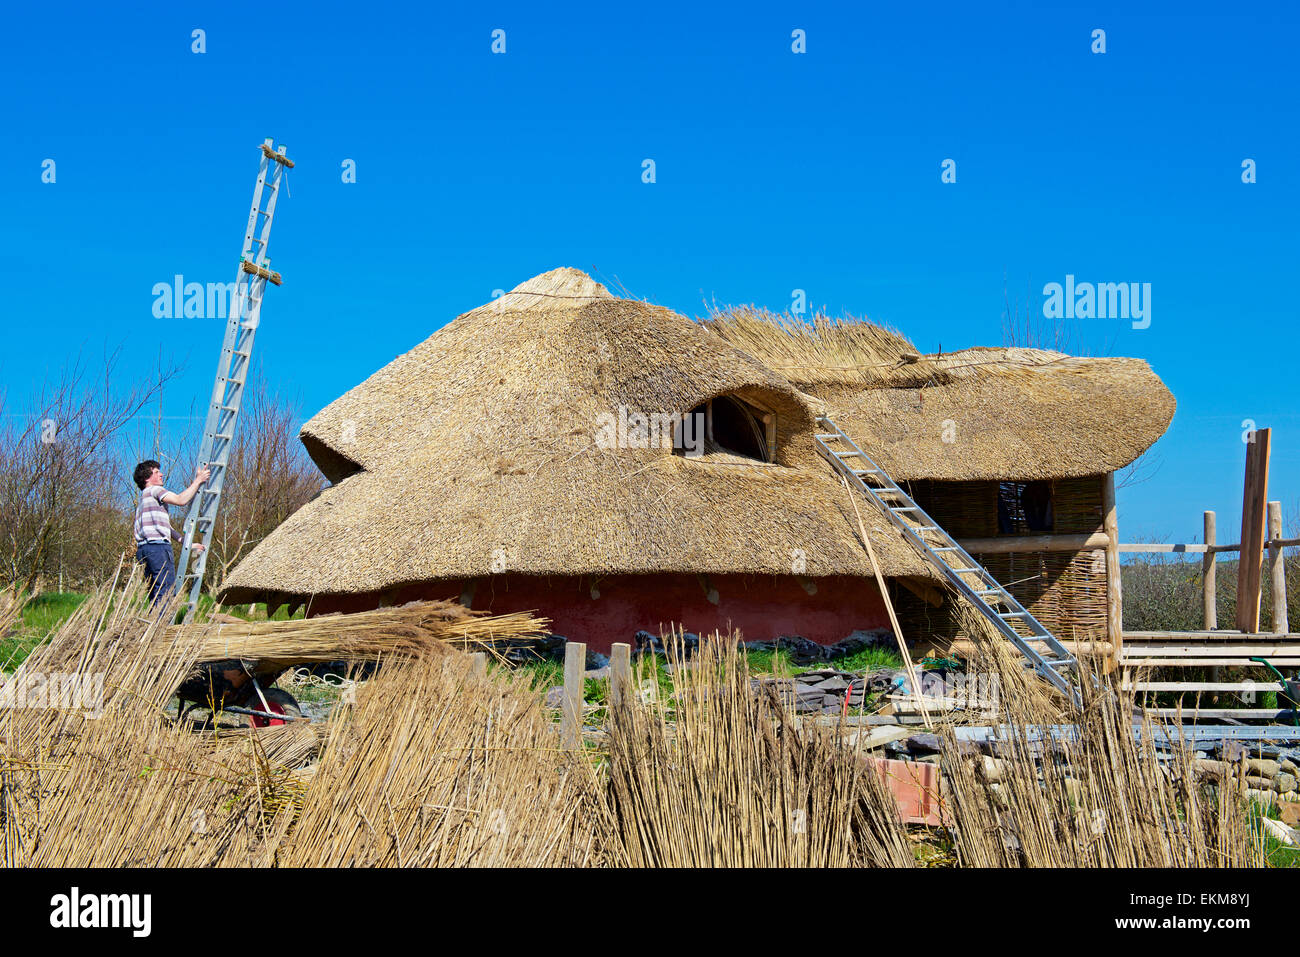 Roundhouse being thatched at the Felin Uchaf educational centre, Llyn Peninsular, Gwynedd, North Wales UK - Stock Image